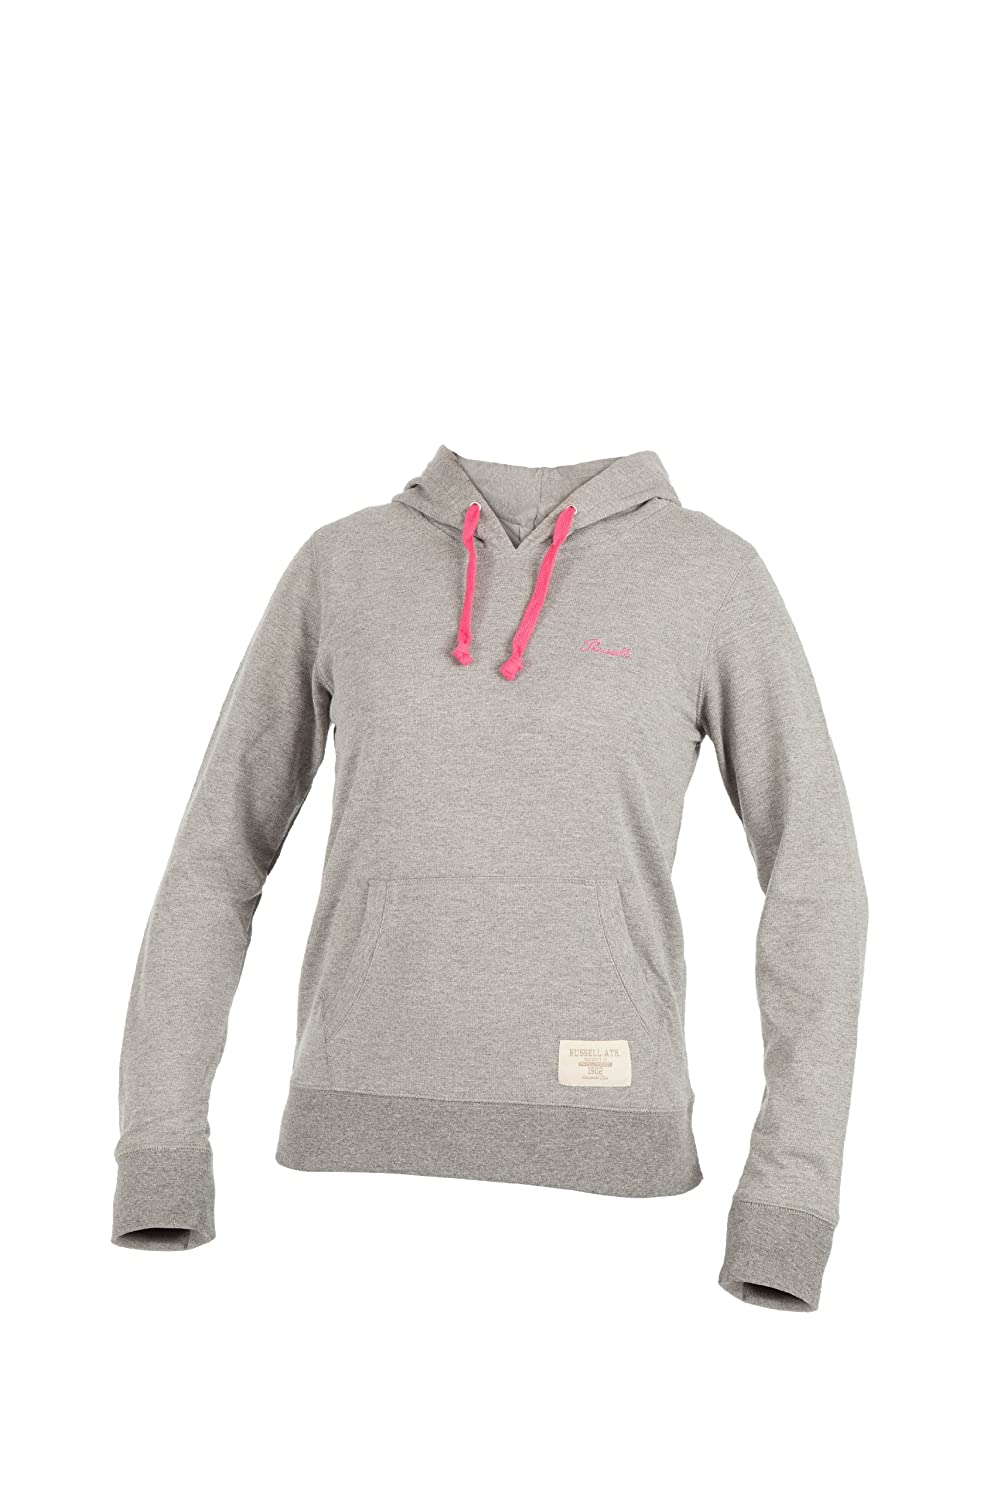 TALLA DE: XL. Russell Athletic Sweatshirt Hooded Pull Over - Punto Deportivo para Mujer